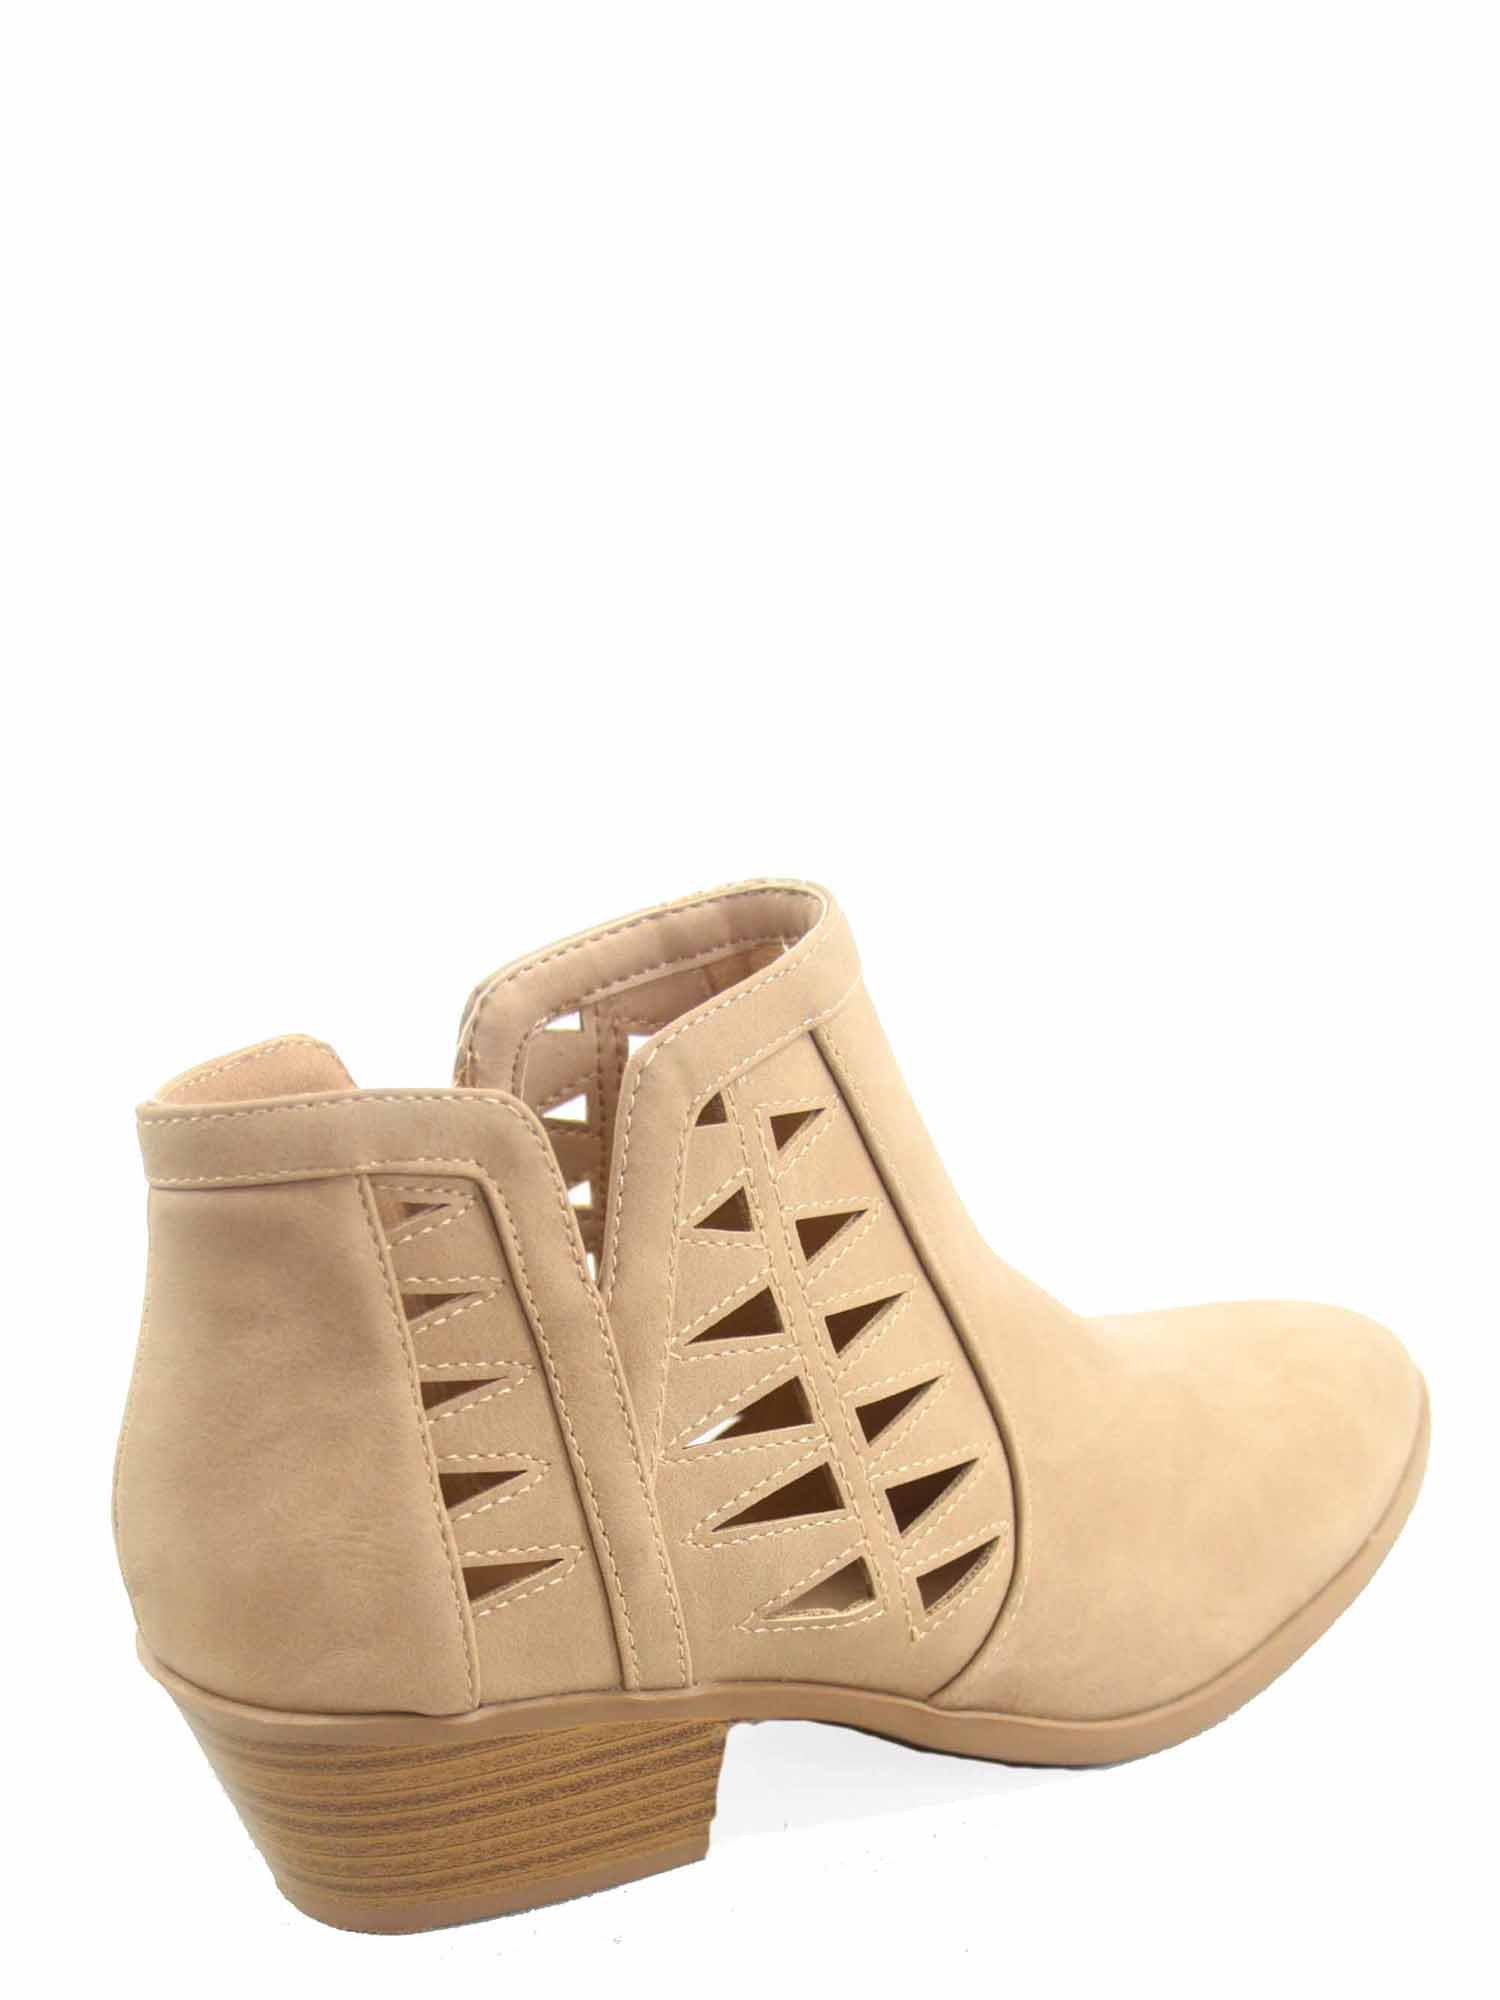 Chance-s Women's Fashion Zip Chunky Low Heel Ankle Booties Shoes